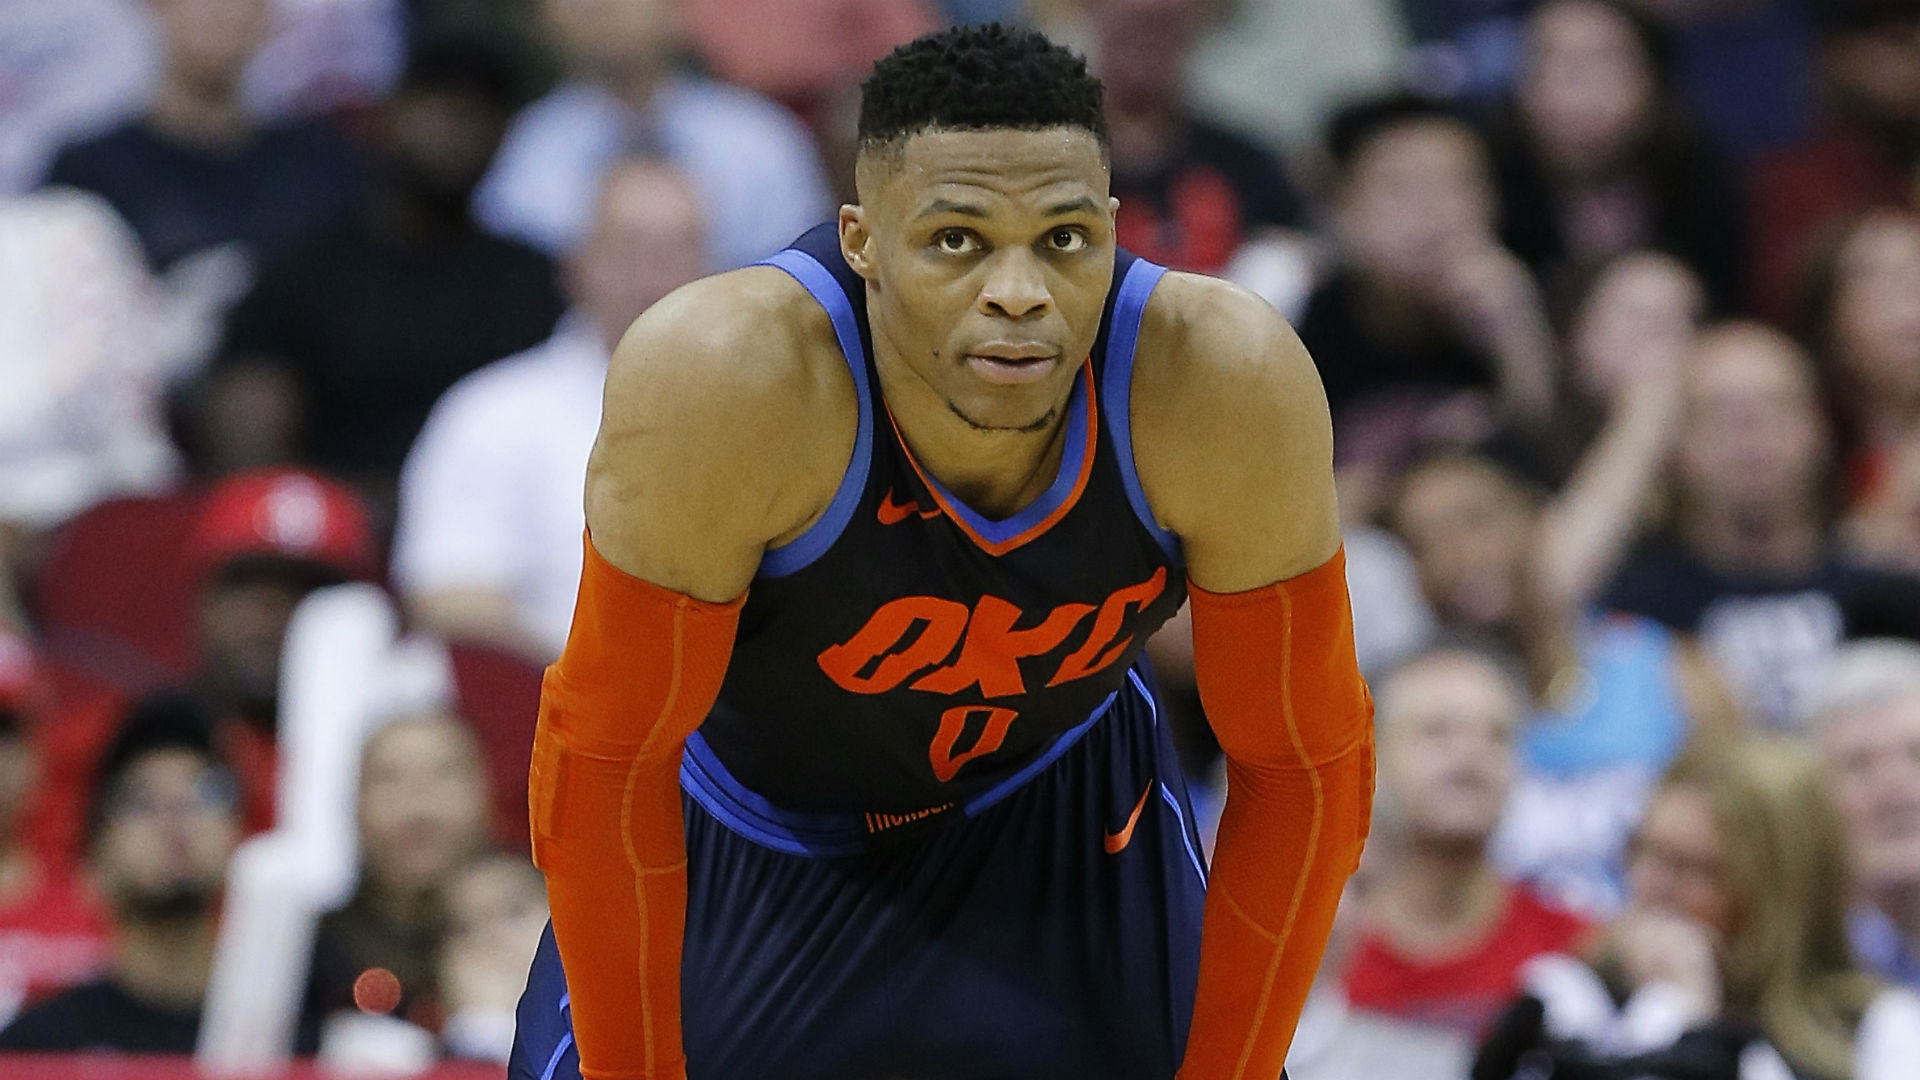 The Oklahoma City Thunder completed their third major trade this month when they reportedly sent Russell Westbrook to the Houston Rockets.